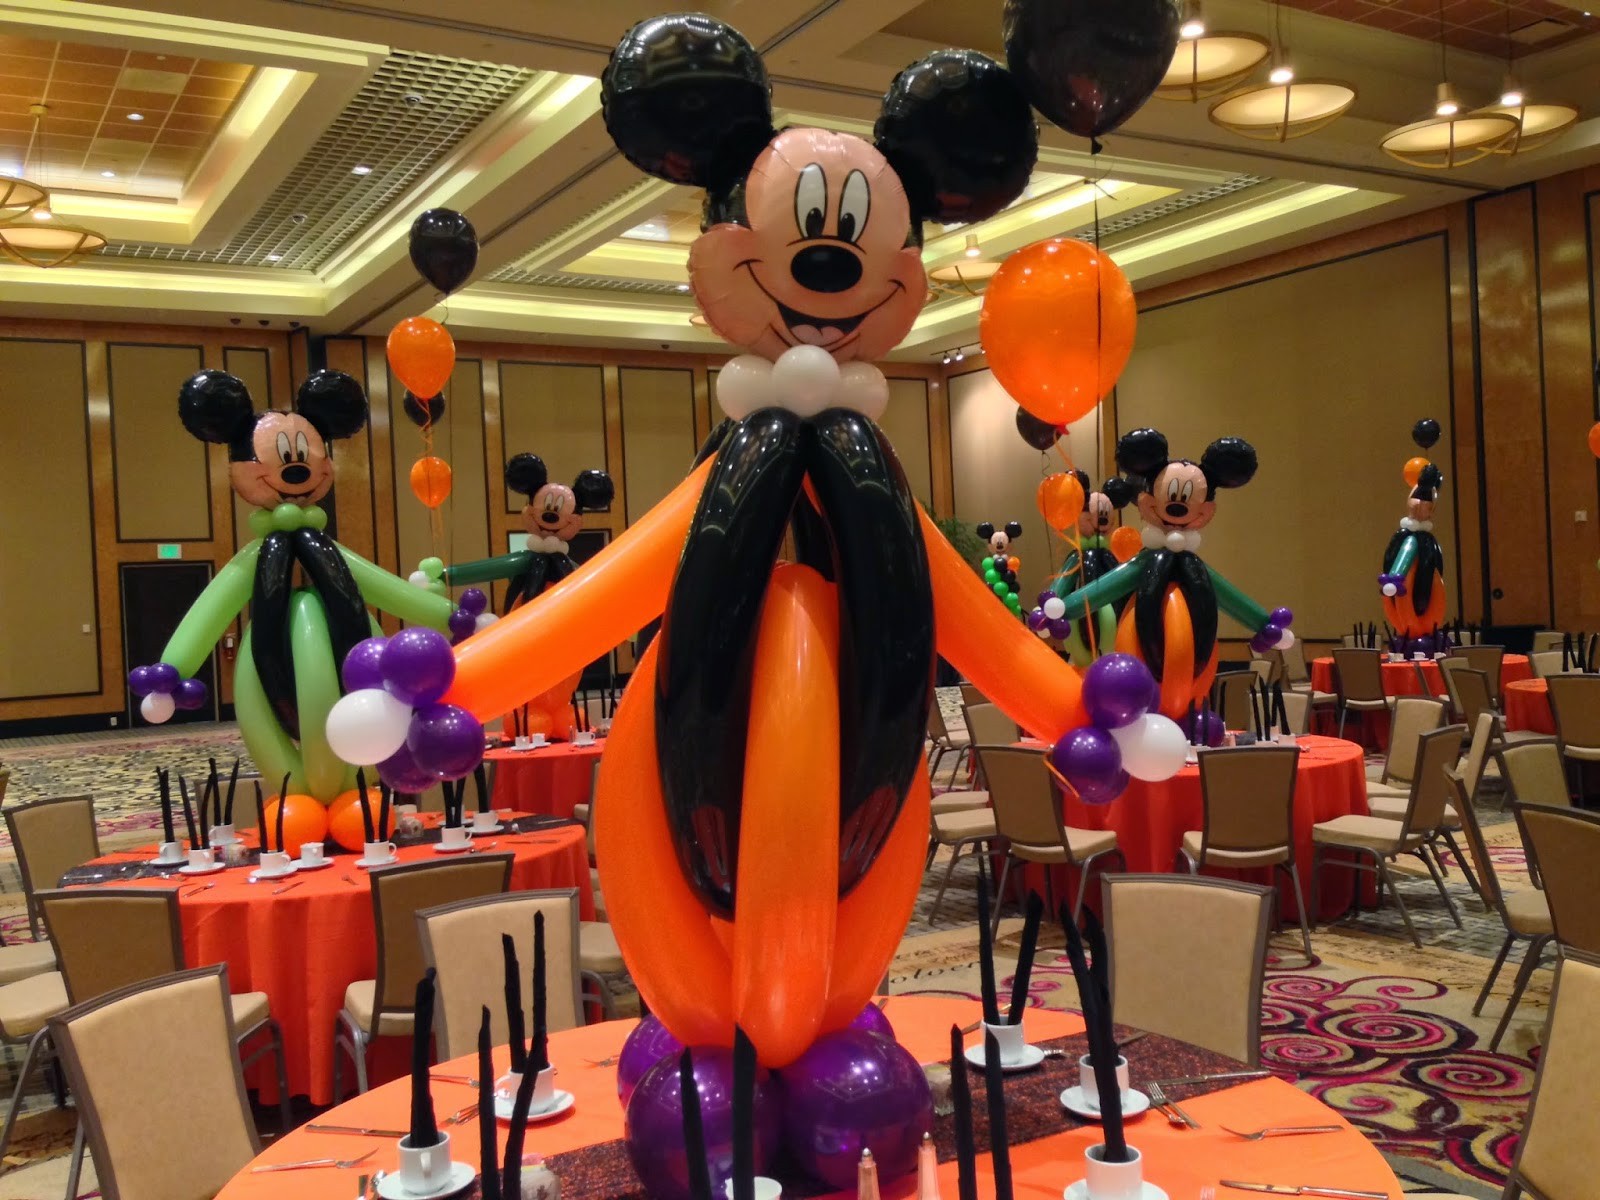 Mickey Mouse Halloween Party Ideas  DreamARK Events Blog August 2011